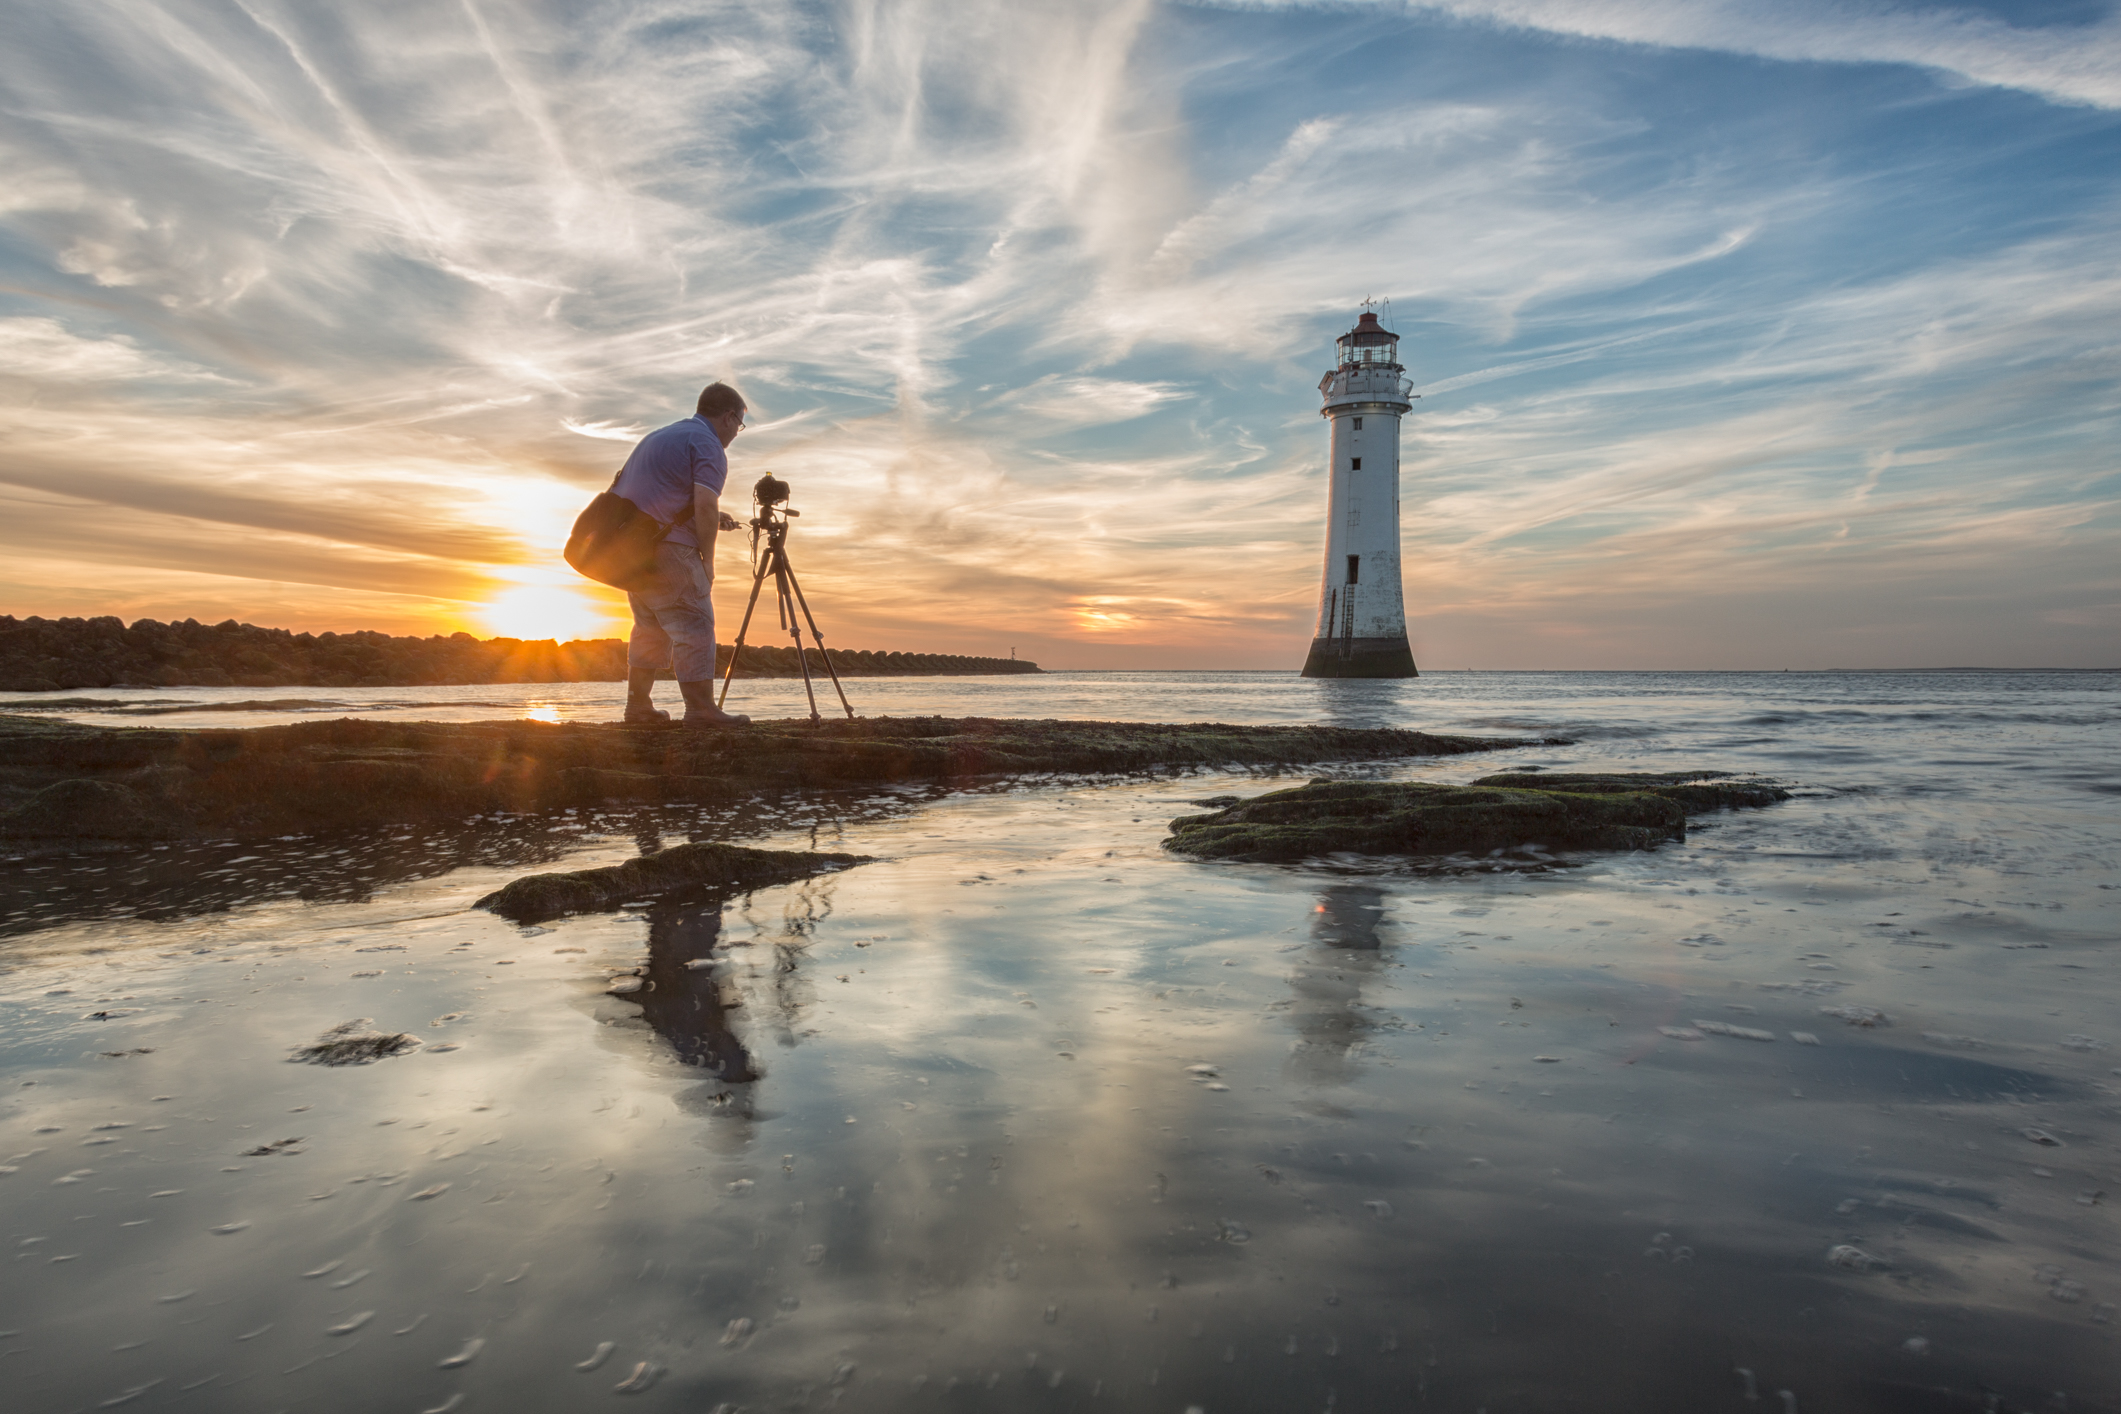 Photographer getting prepared to photograph New Brighton Lighthouse, England